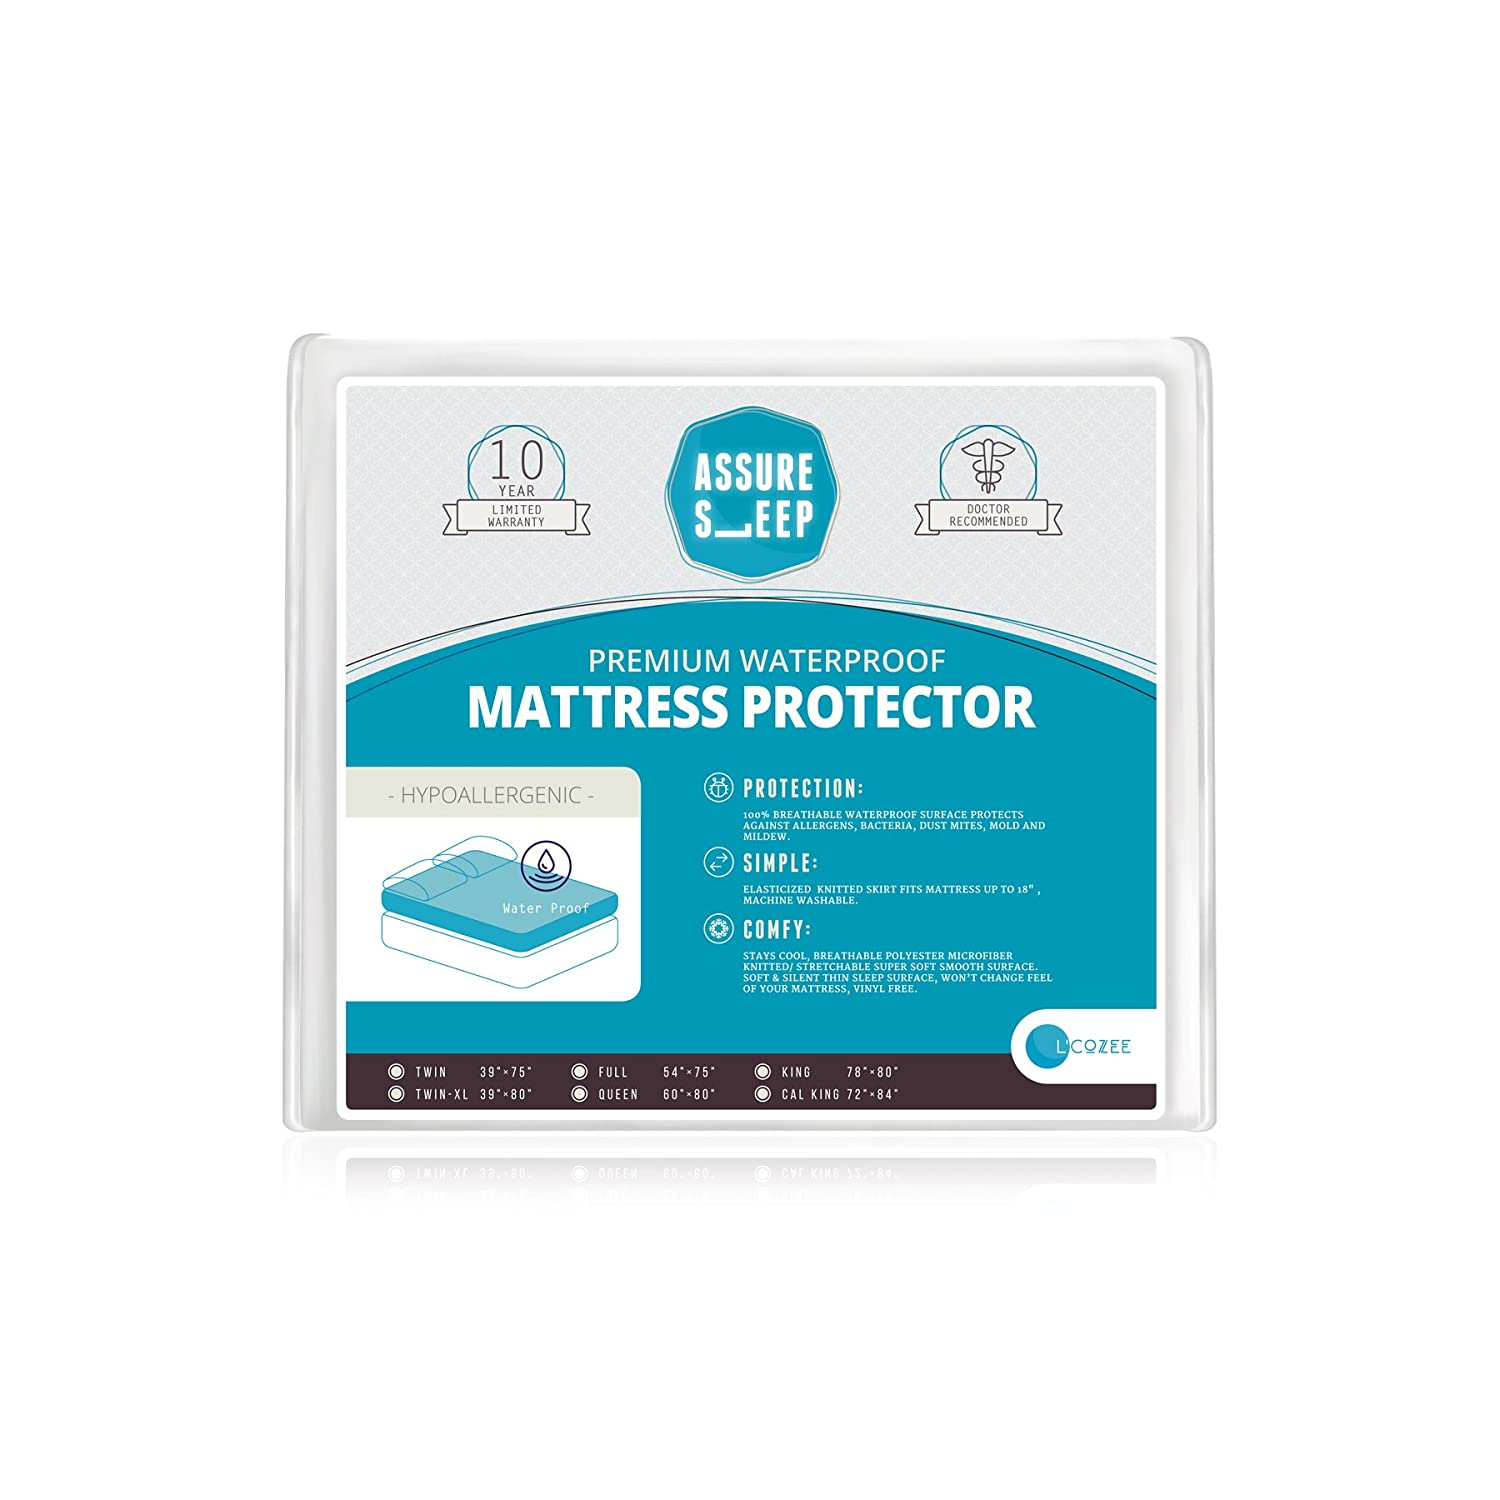 Breathable Hypoallergenic Vinyl Free Queen Size Premium Waterproof Mattress Protector Dust Mite Proof Cover by Assure Sleep by LCOZEE